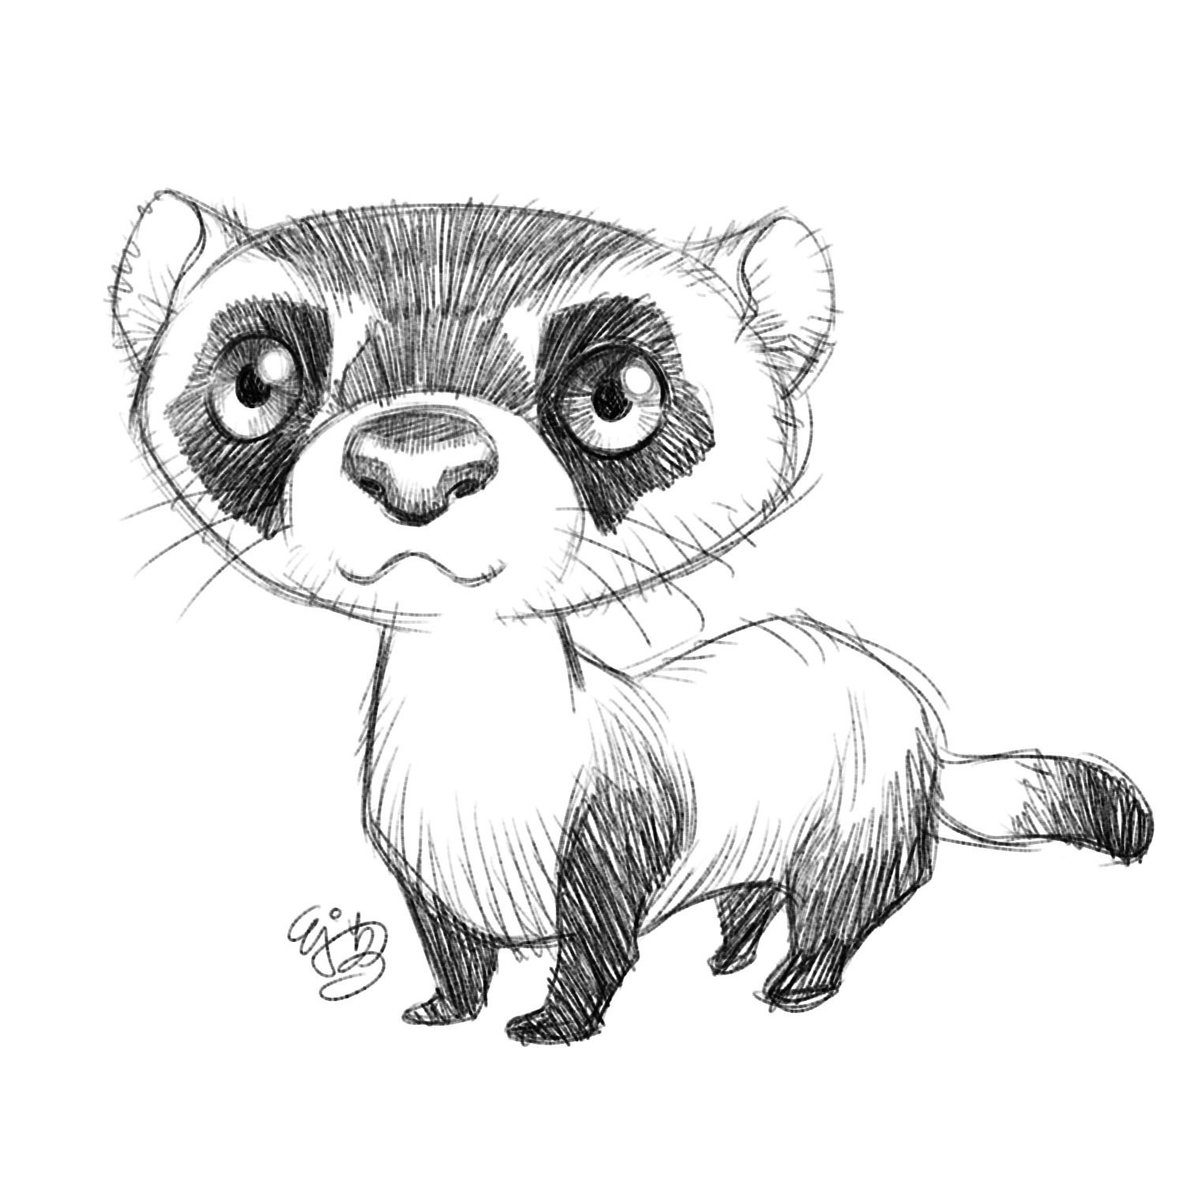 hight resolution of 1200x1200 e j su on twitter sketch 0045 2017 0907 black footed ferret